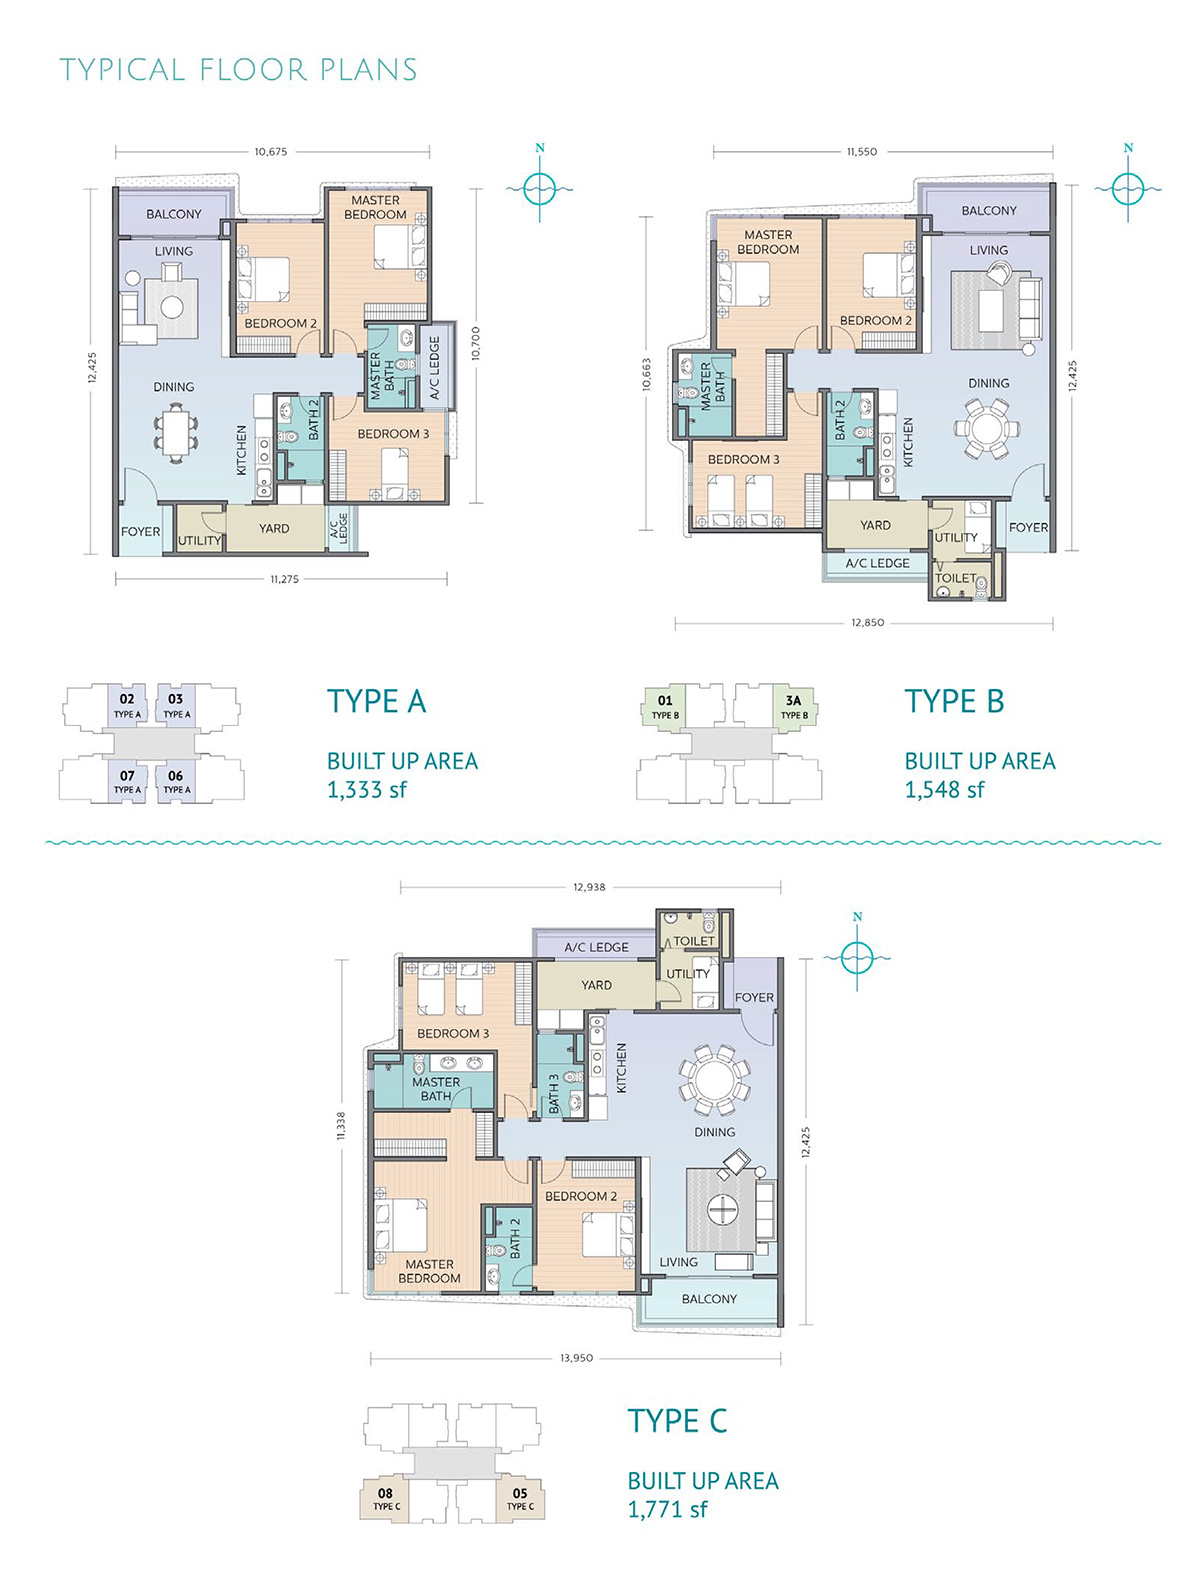 Sefina-Condominium-floor-plan